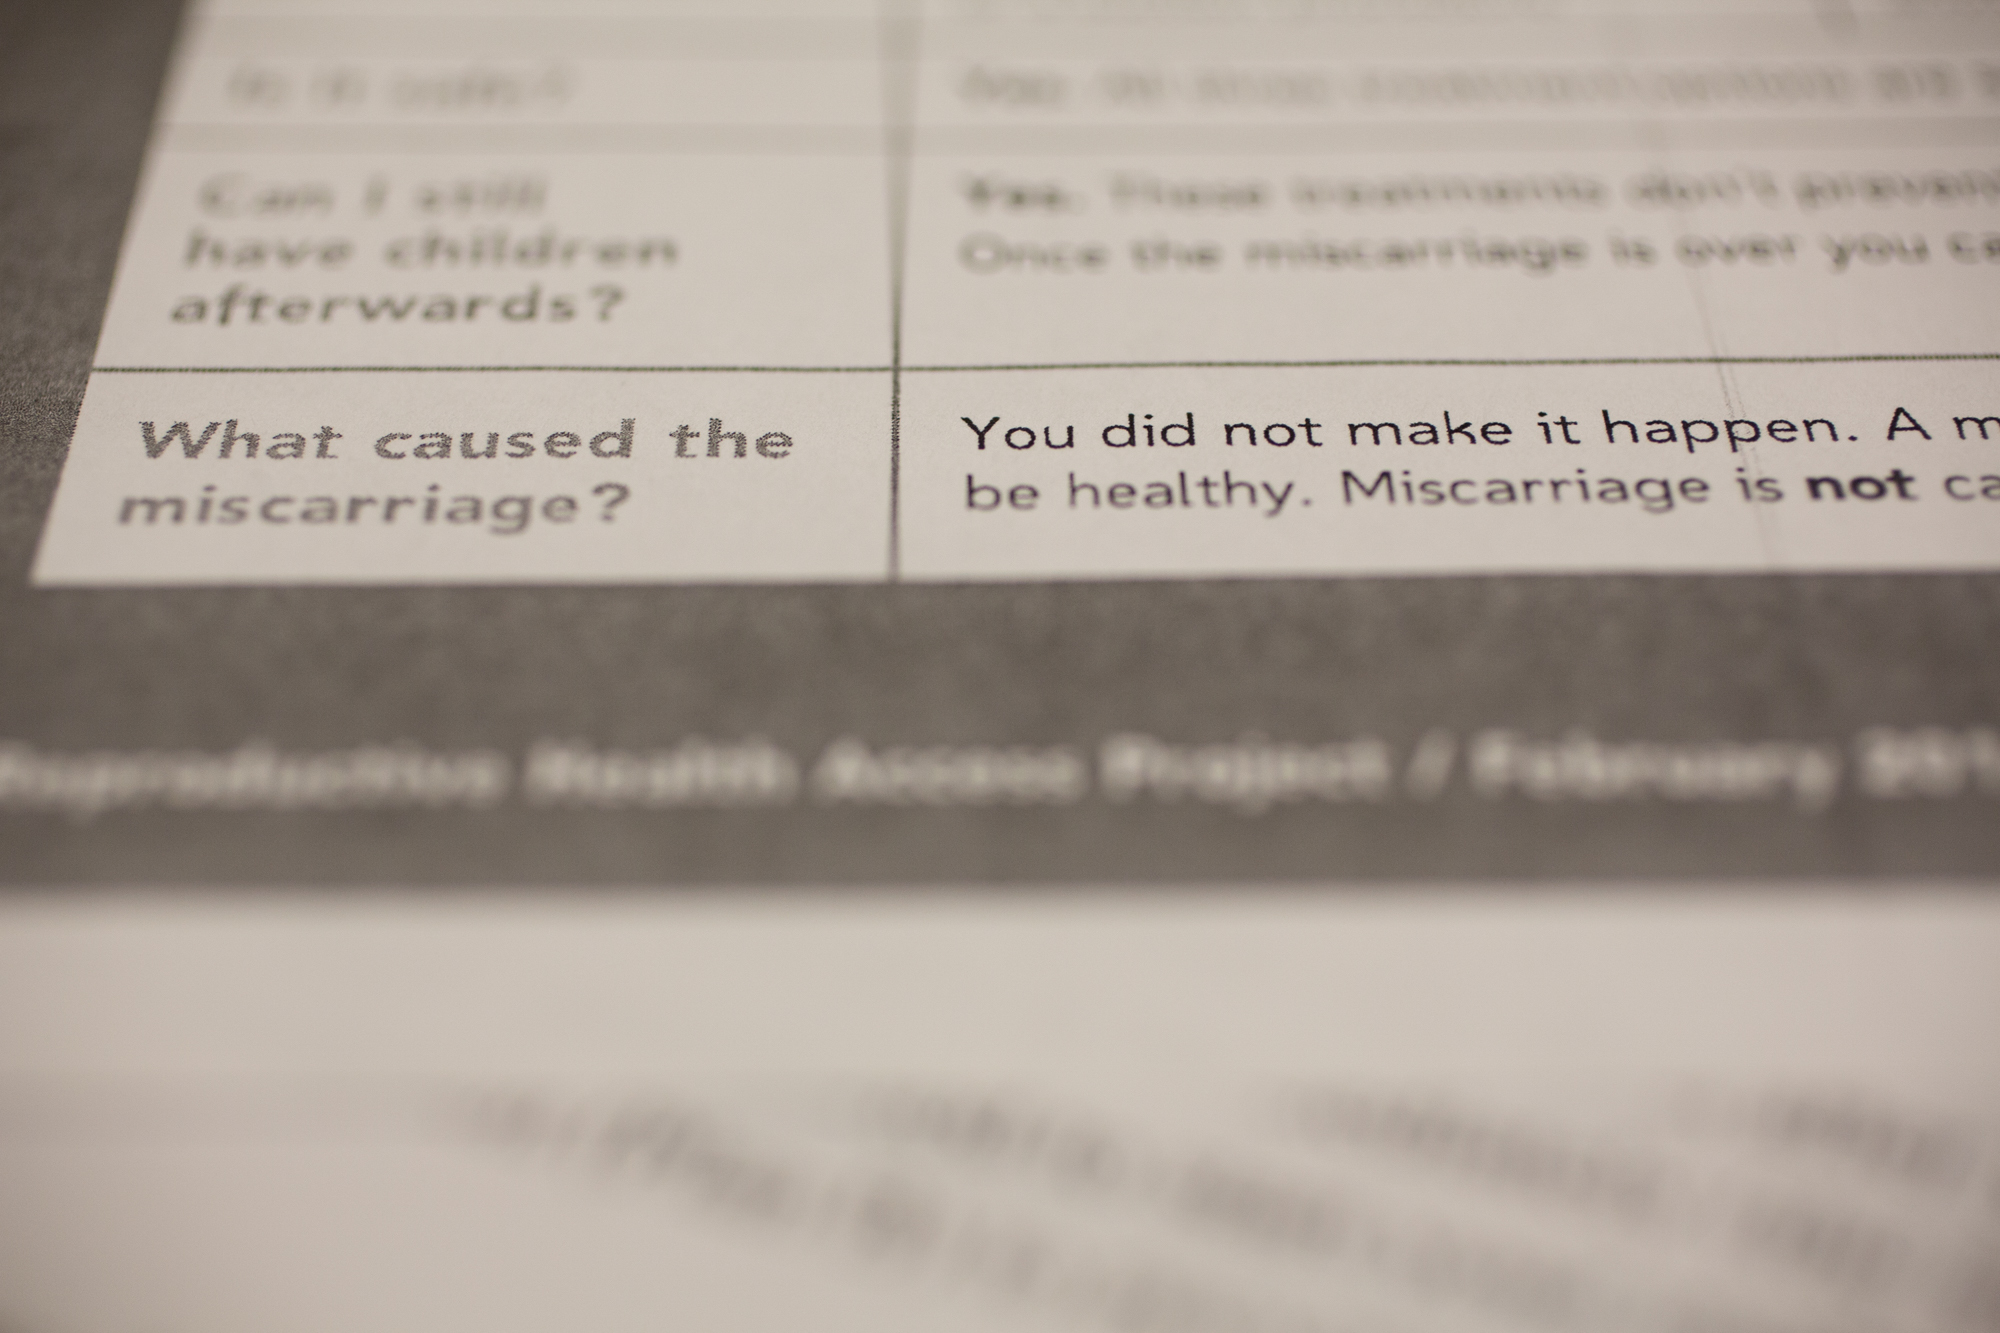 A handout about miscarriages provided to patients at the University of New Mexico Center for Reproductive Health in Albuquerque.